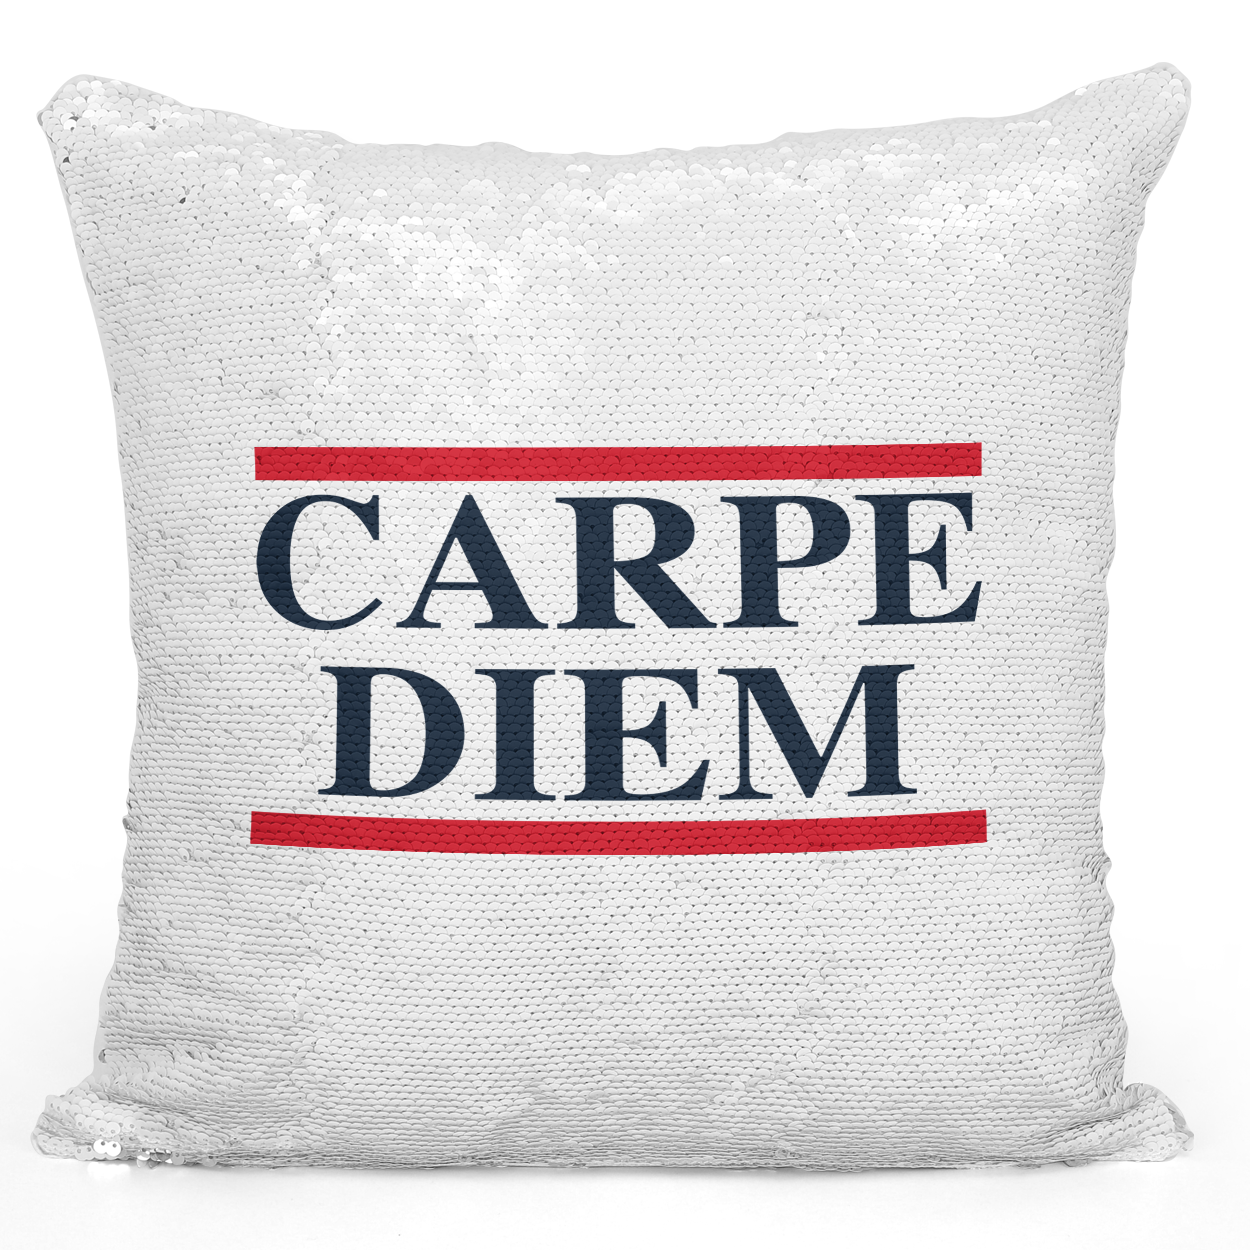 16x16 inch Sequin Throw Pillow Magic Flip Pillow Carpediem Printed Pillow With Words Loud Universe